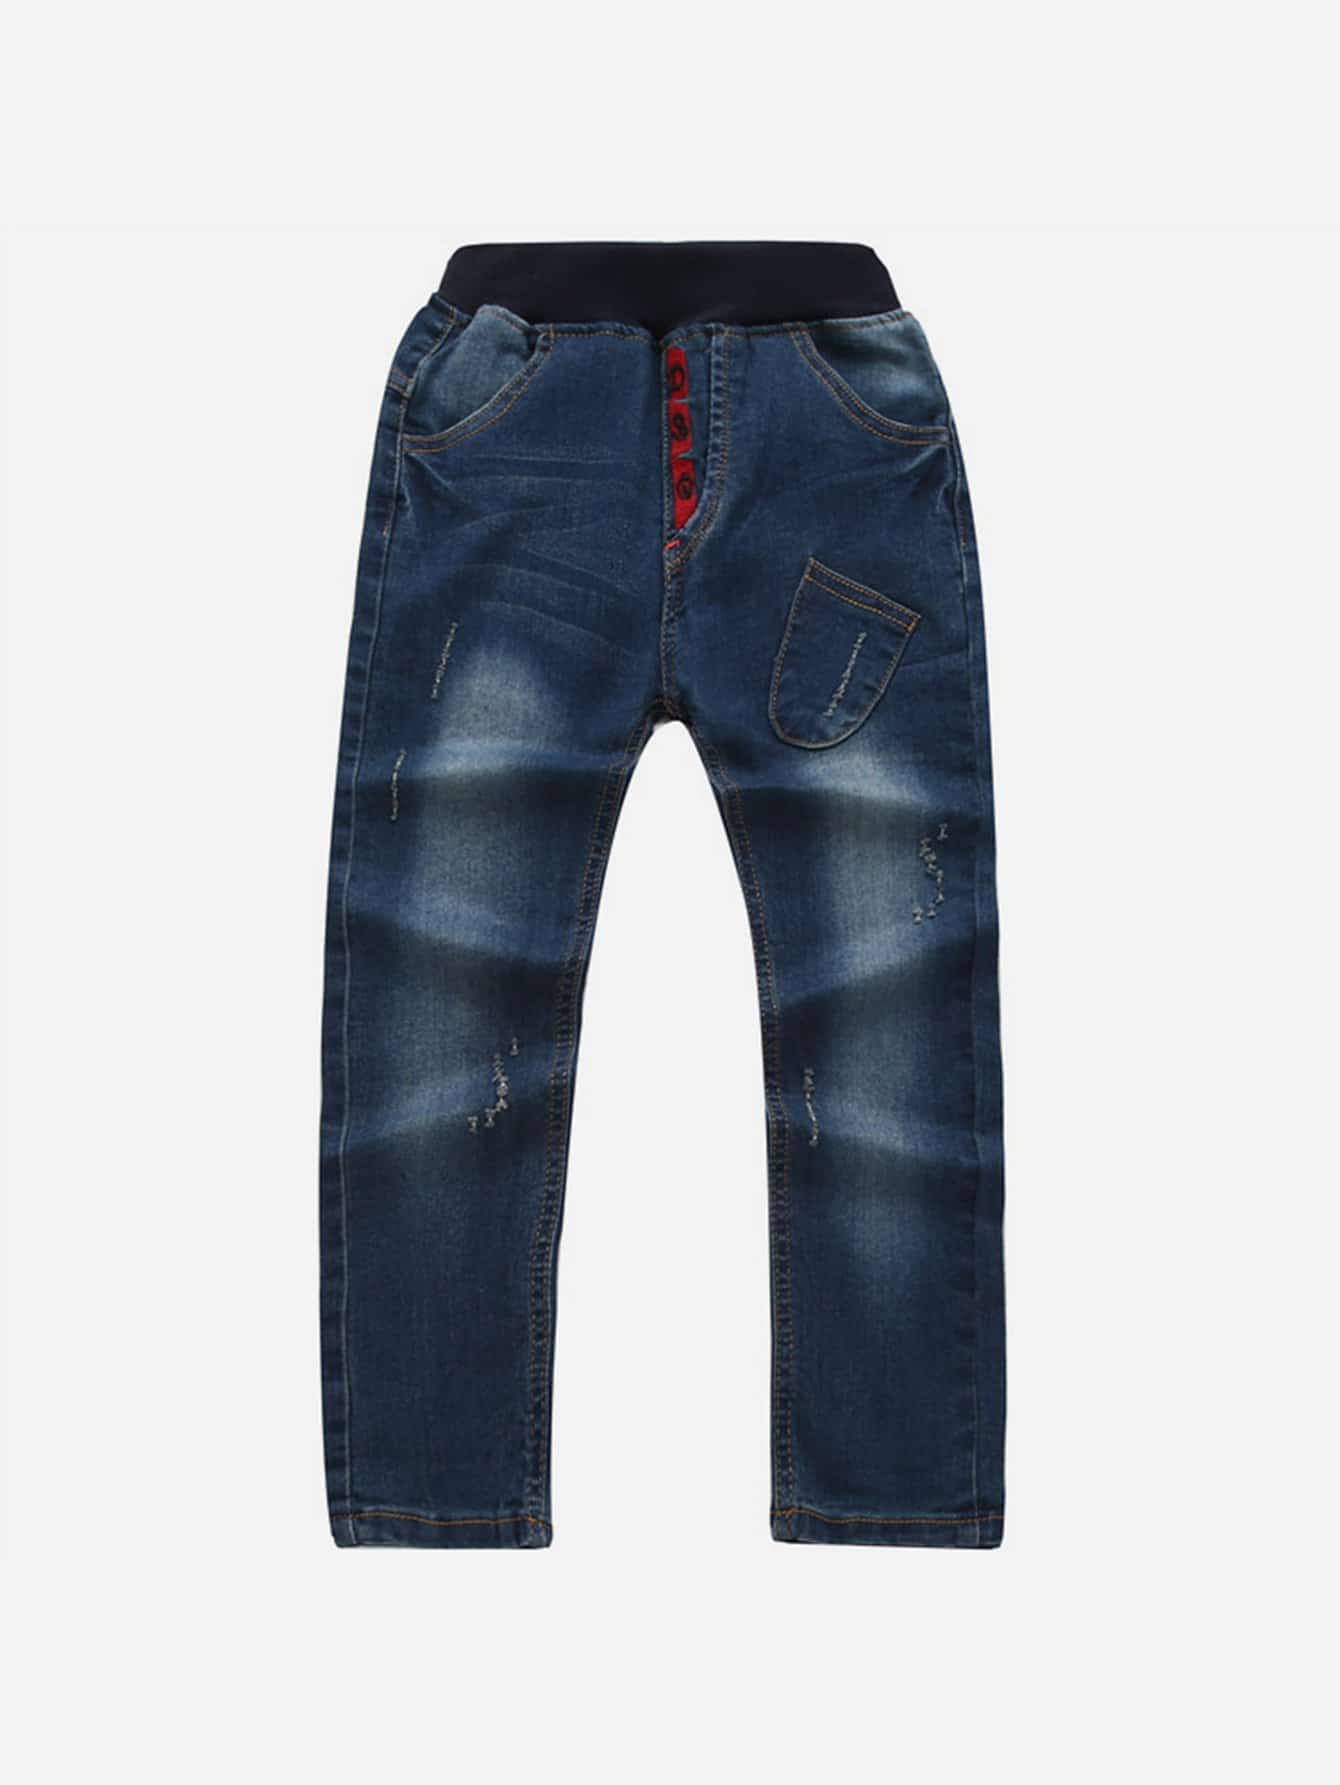 Patched Embroidered Jeans emoji embroidered jeans